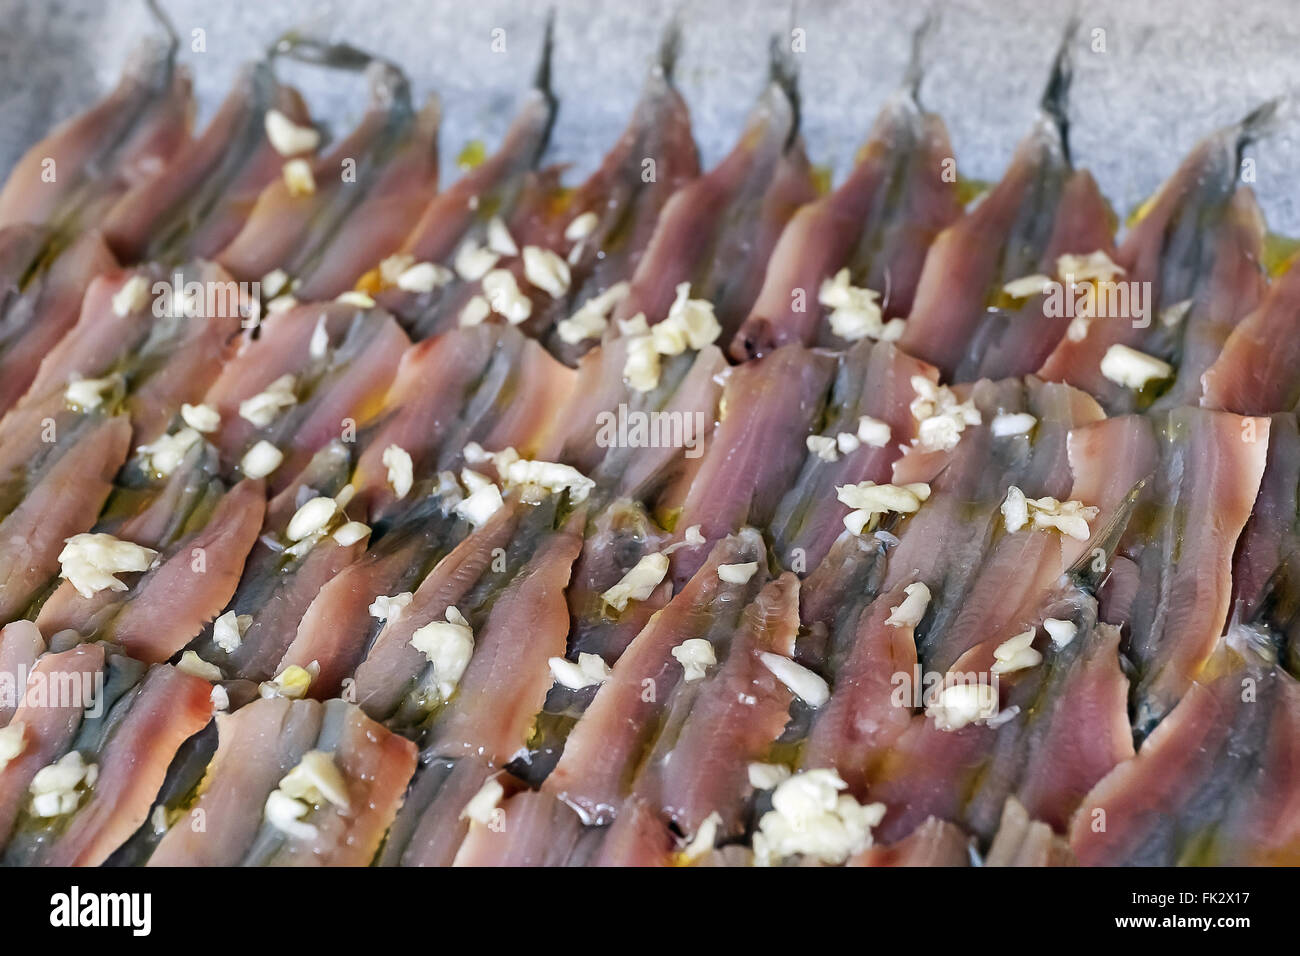 Raw anchovies prepared baking sheet and season before being fired and fired - Stock Image